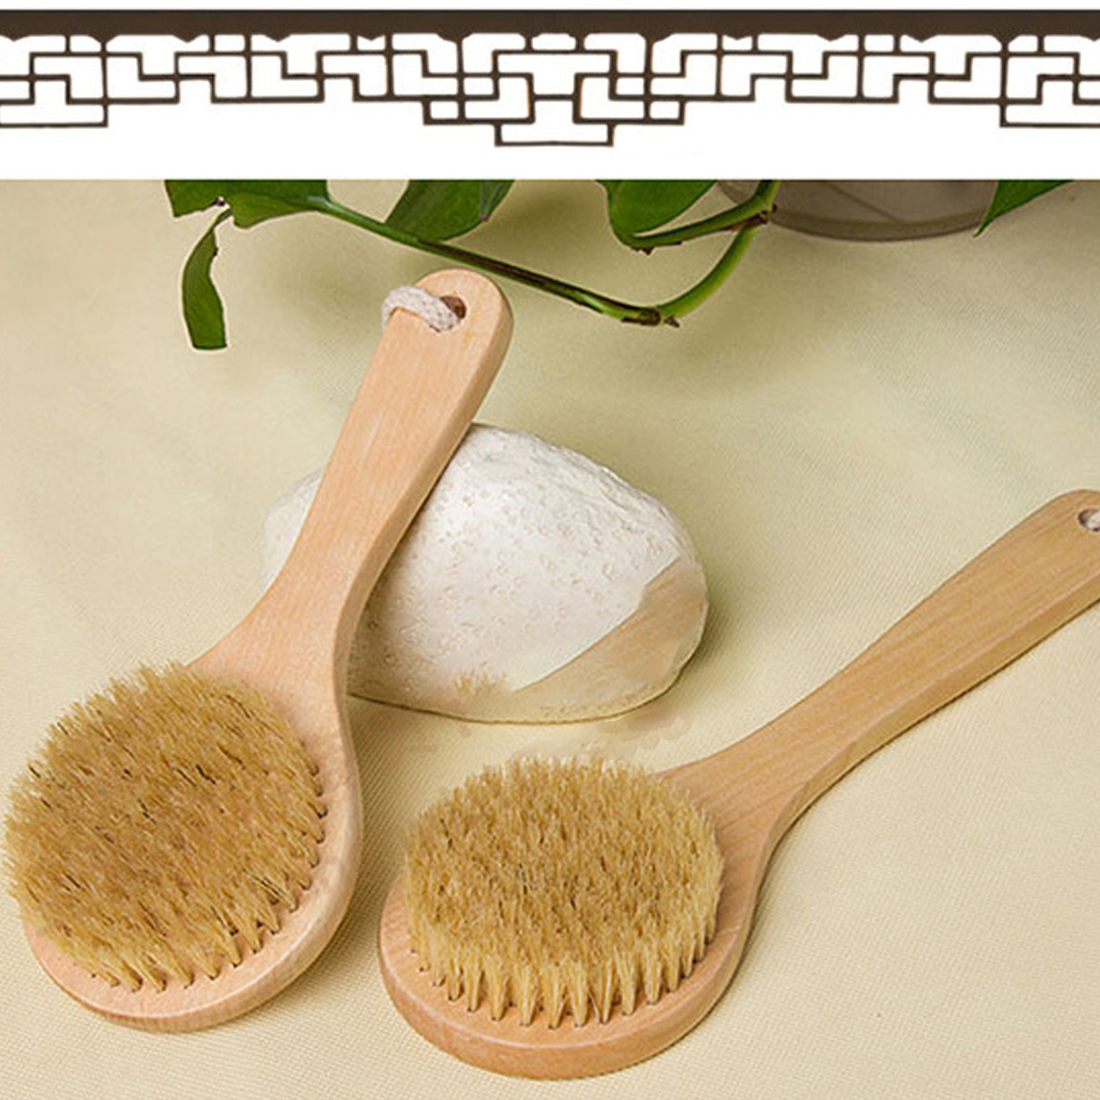 Good Sale Bath Brush Wood Handle Natural Bristle Middle Long Handle Wooden Shower Body Bath Brush Round Head Bath Accessory